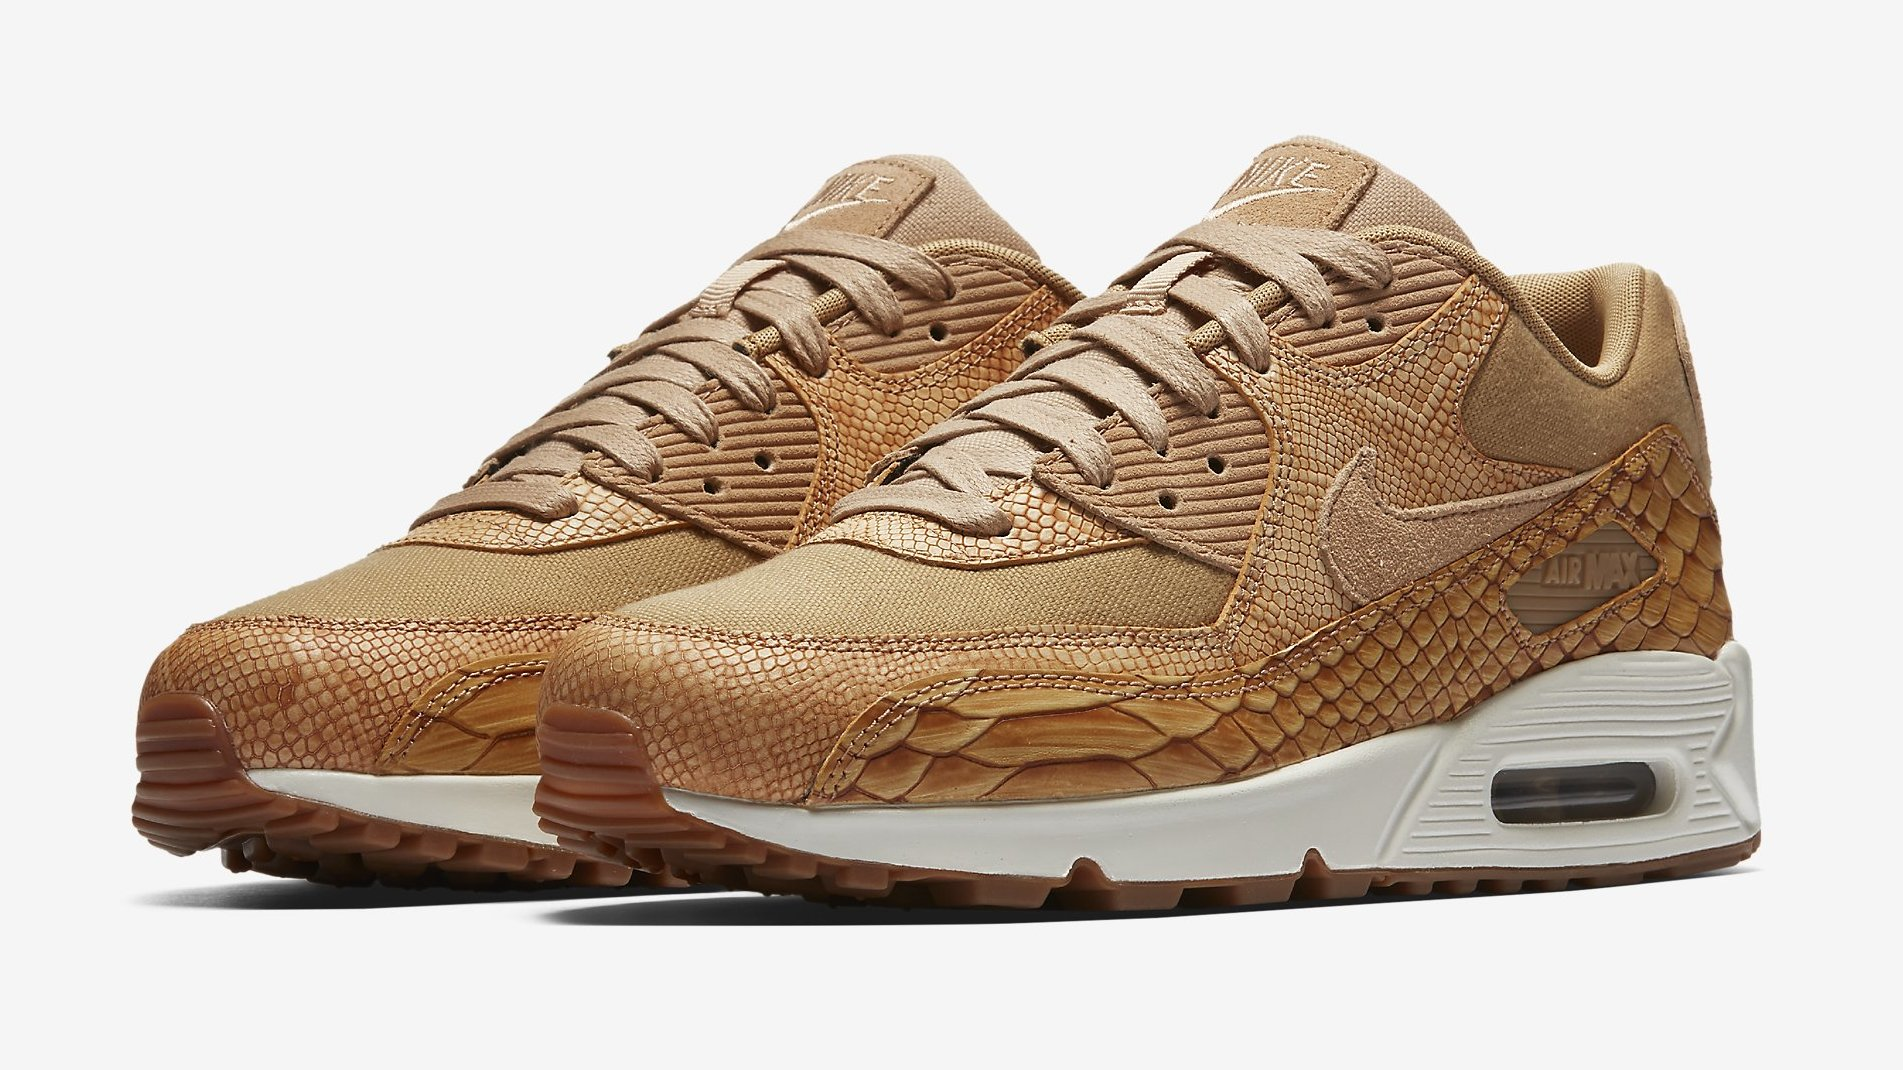 the best attitude c0aff 80c74 The Nike Air Max  Snakeskin  Pack Available Now   Sole Collector